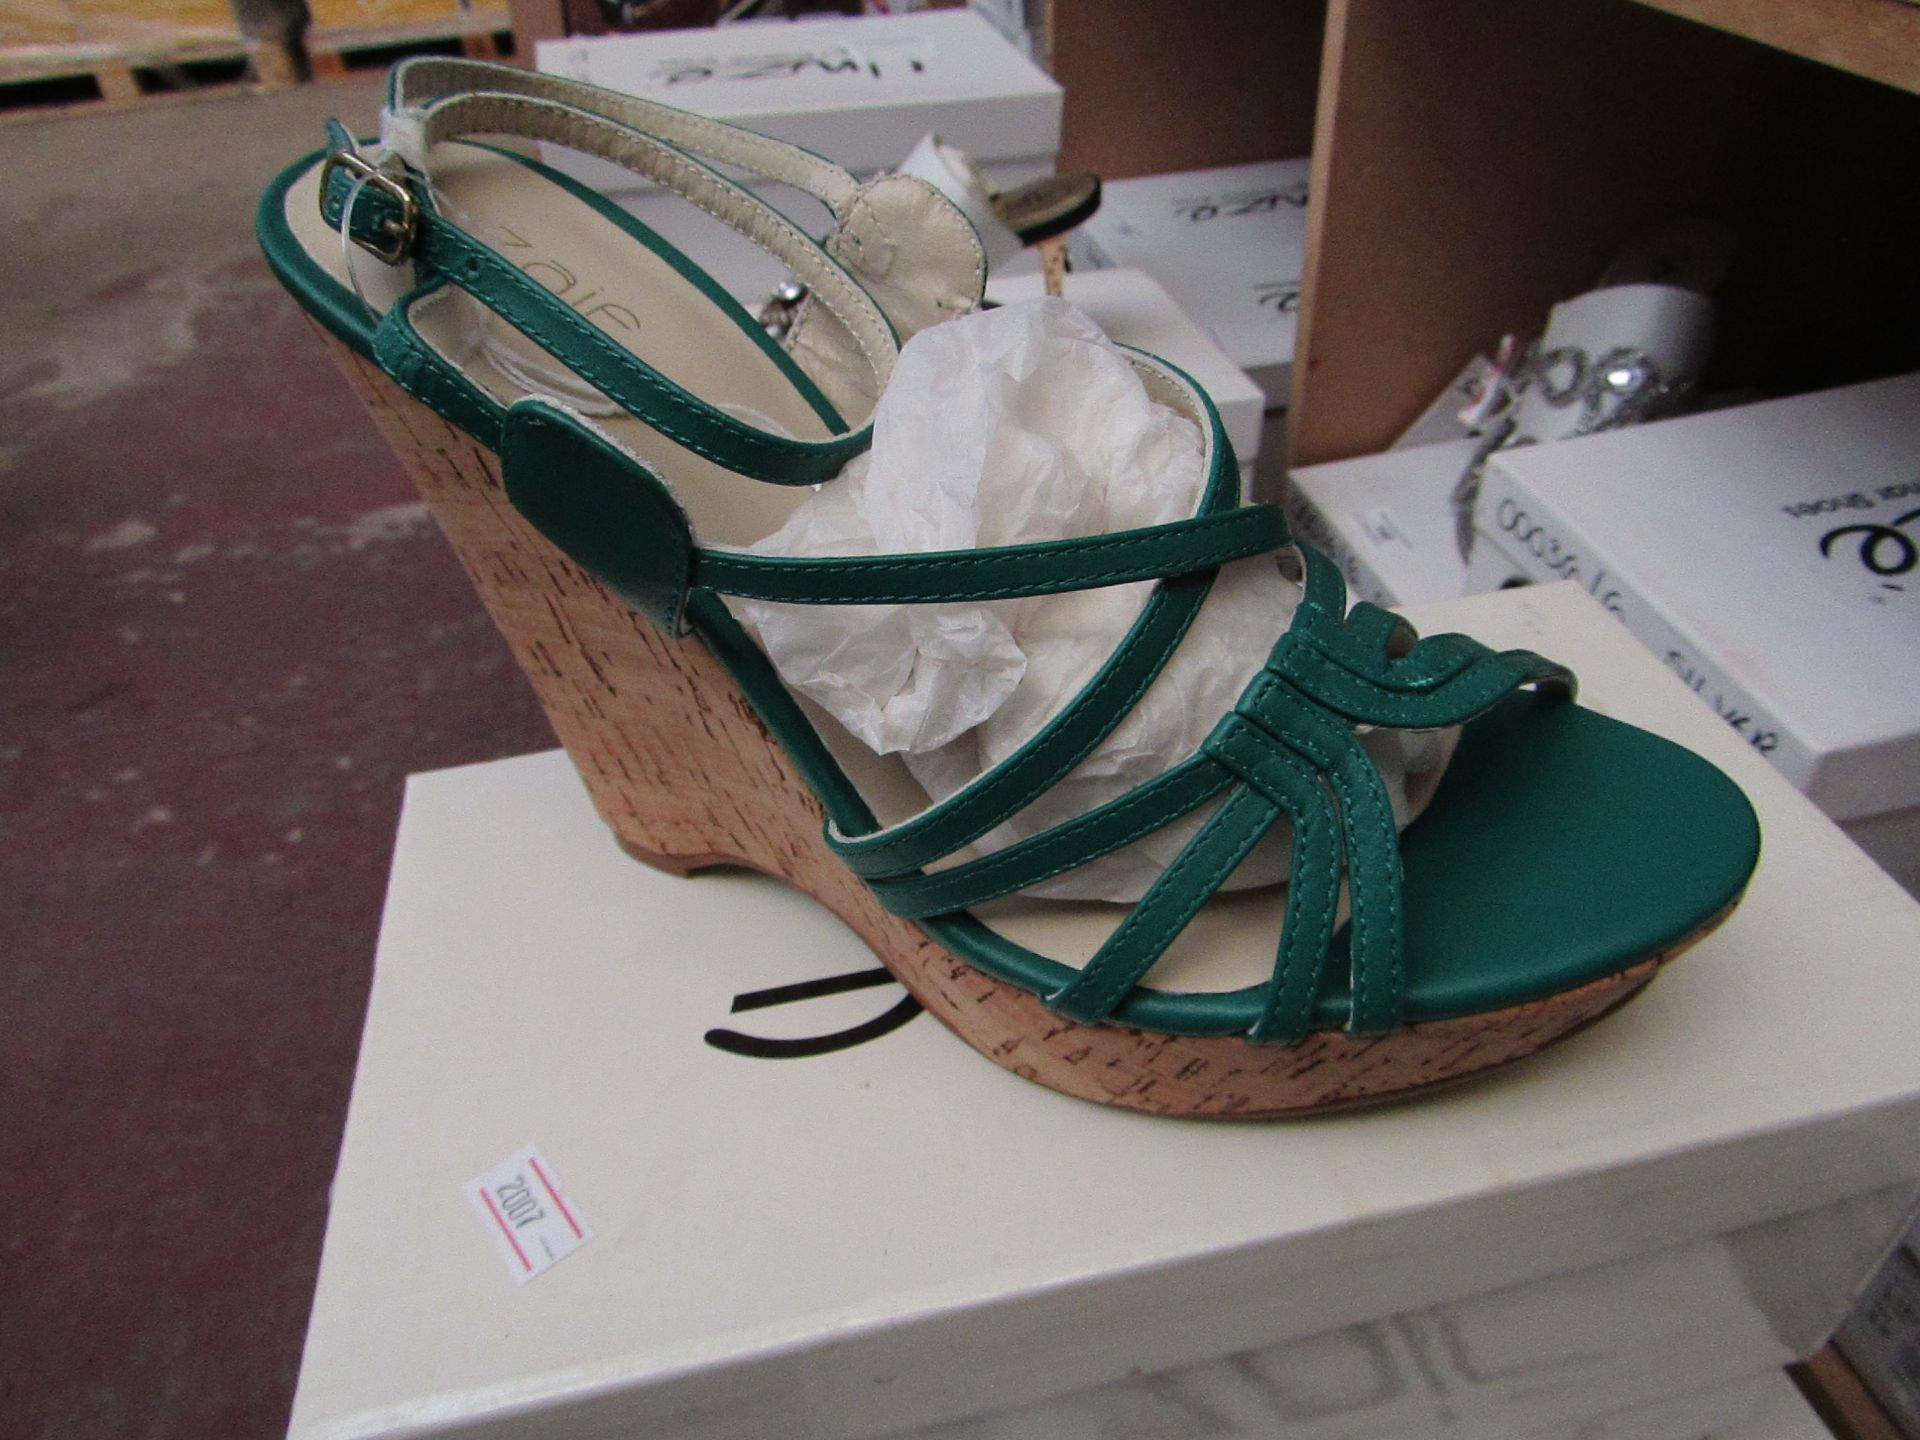 Zaif by Shalamar Shoes Ladies Green Wedge Shoes size 6 new & boxed see image for design